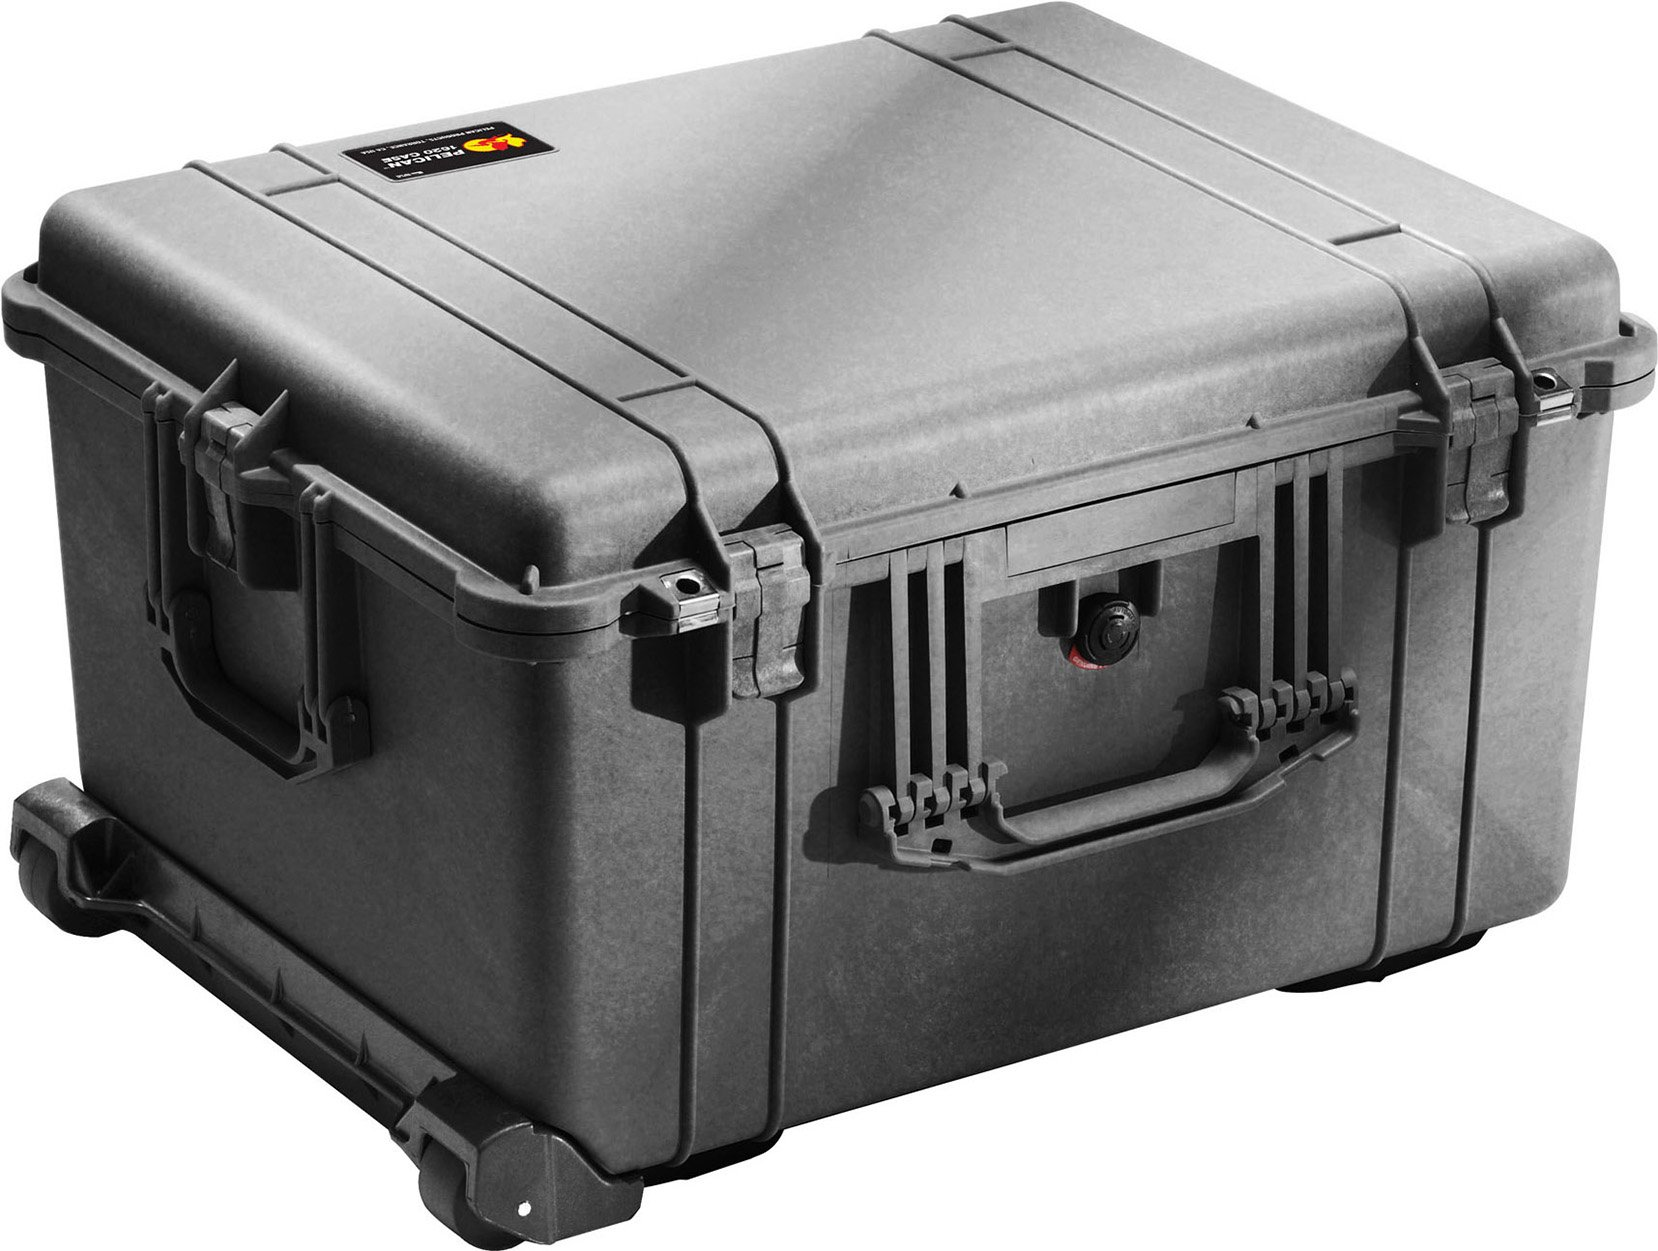 Pelican 1620 Case With Foam (Black) by Pelican